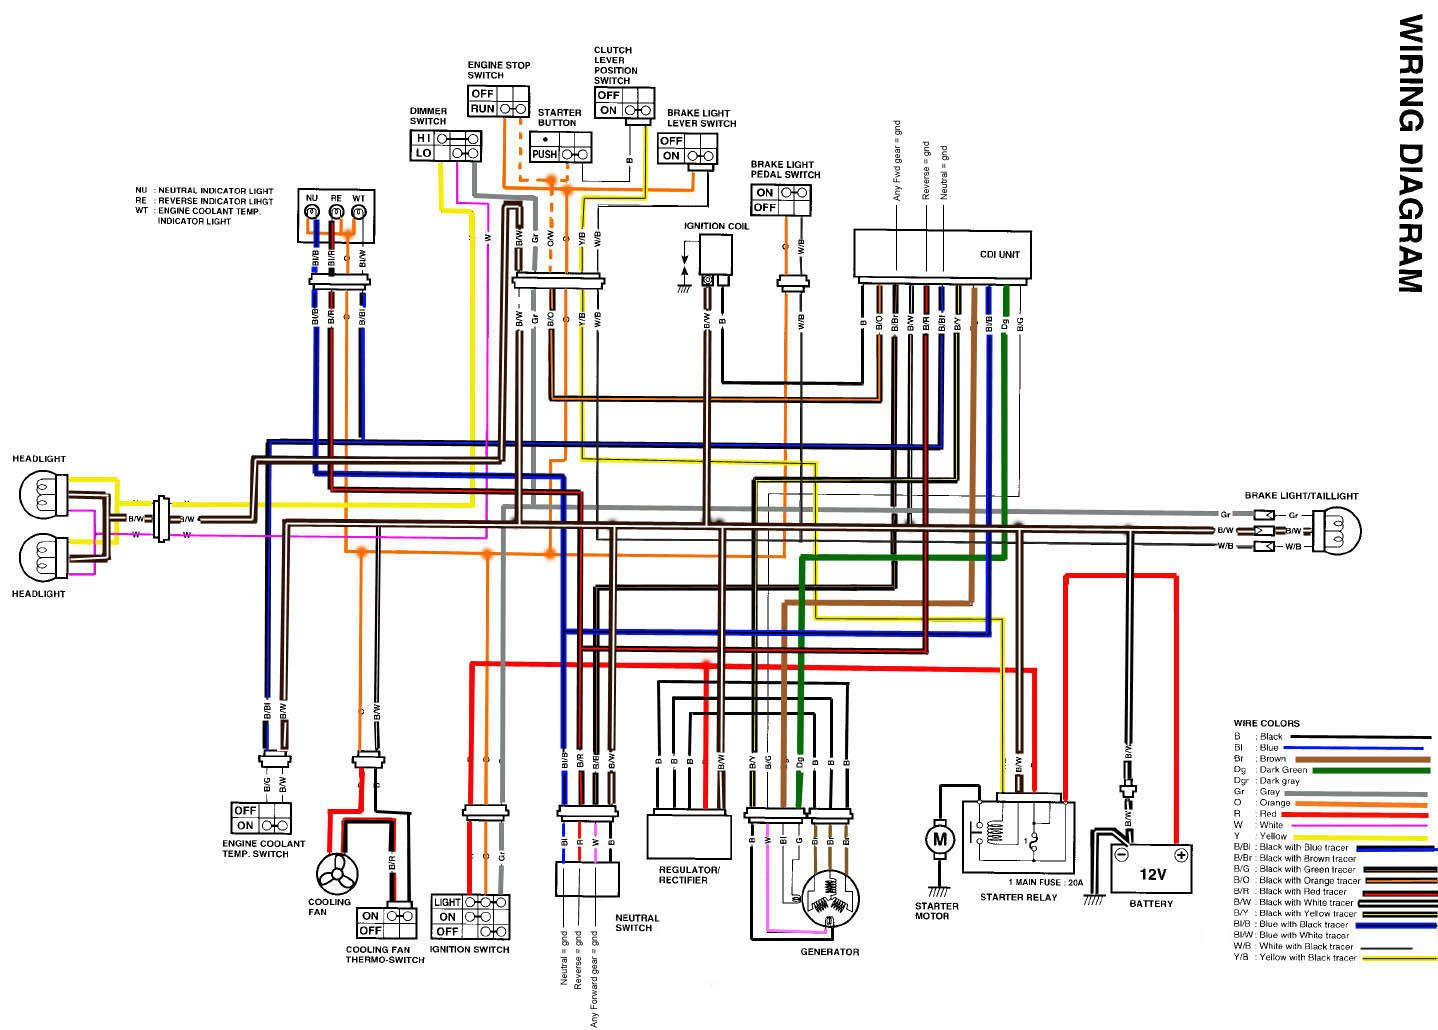 on a 2007 suzuki eiger wiring diagram wiring diagrams konsultdrz 400 electrical diagram wiring diagram centre [ 1438 x 1030 Pixel ]